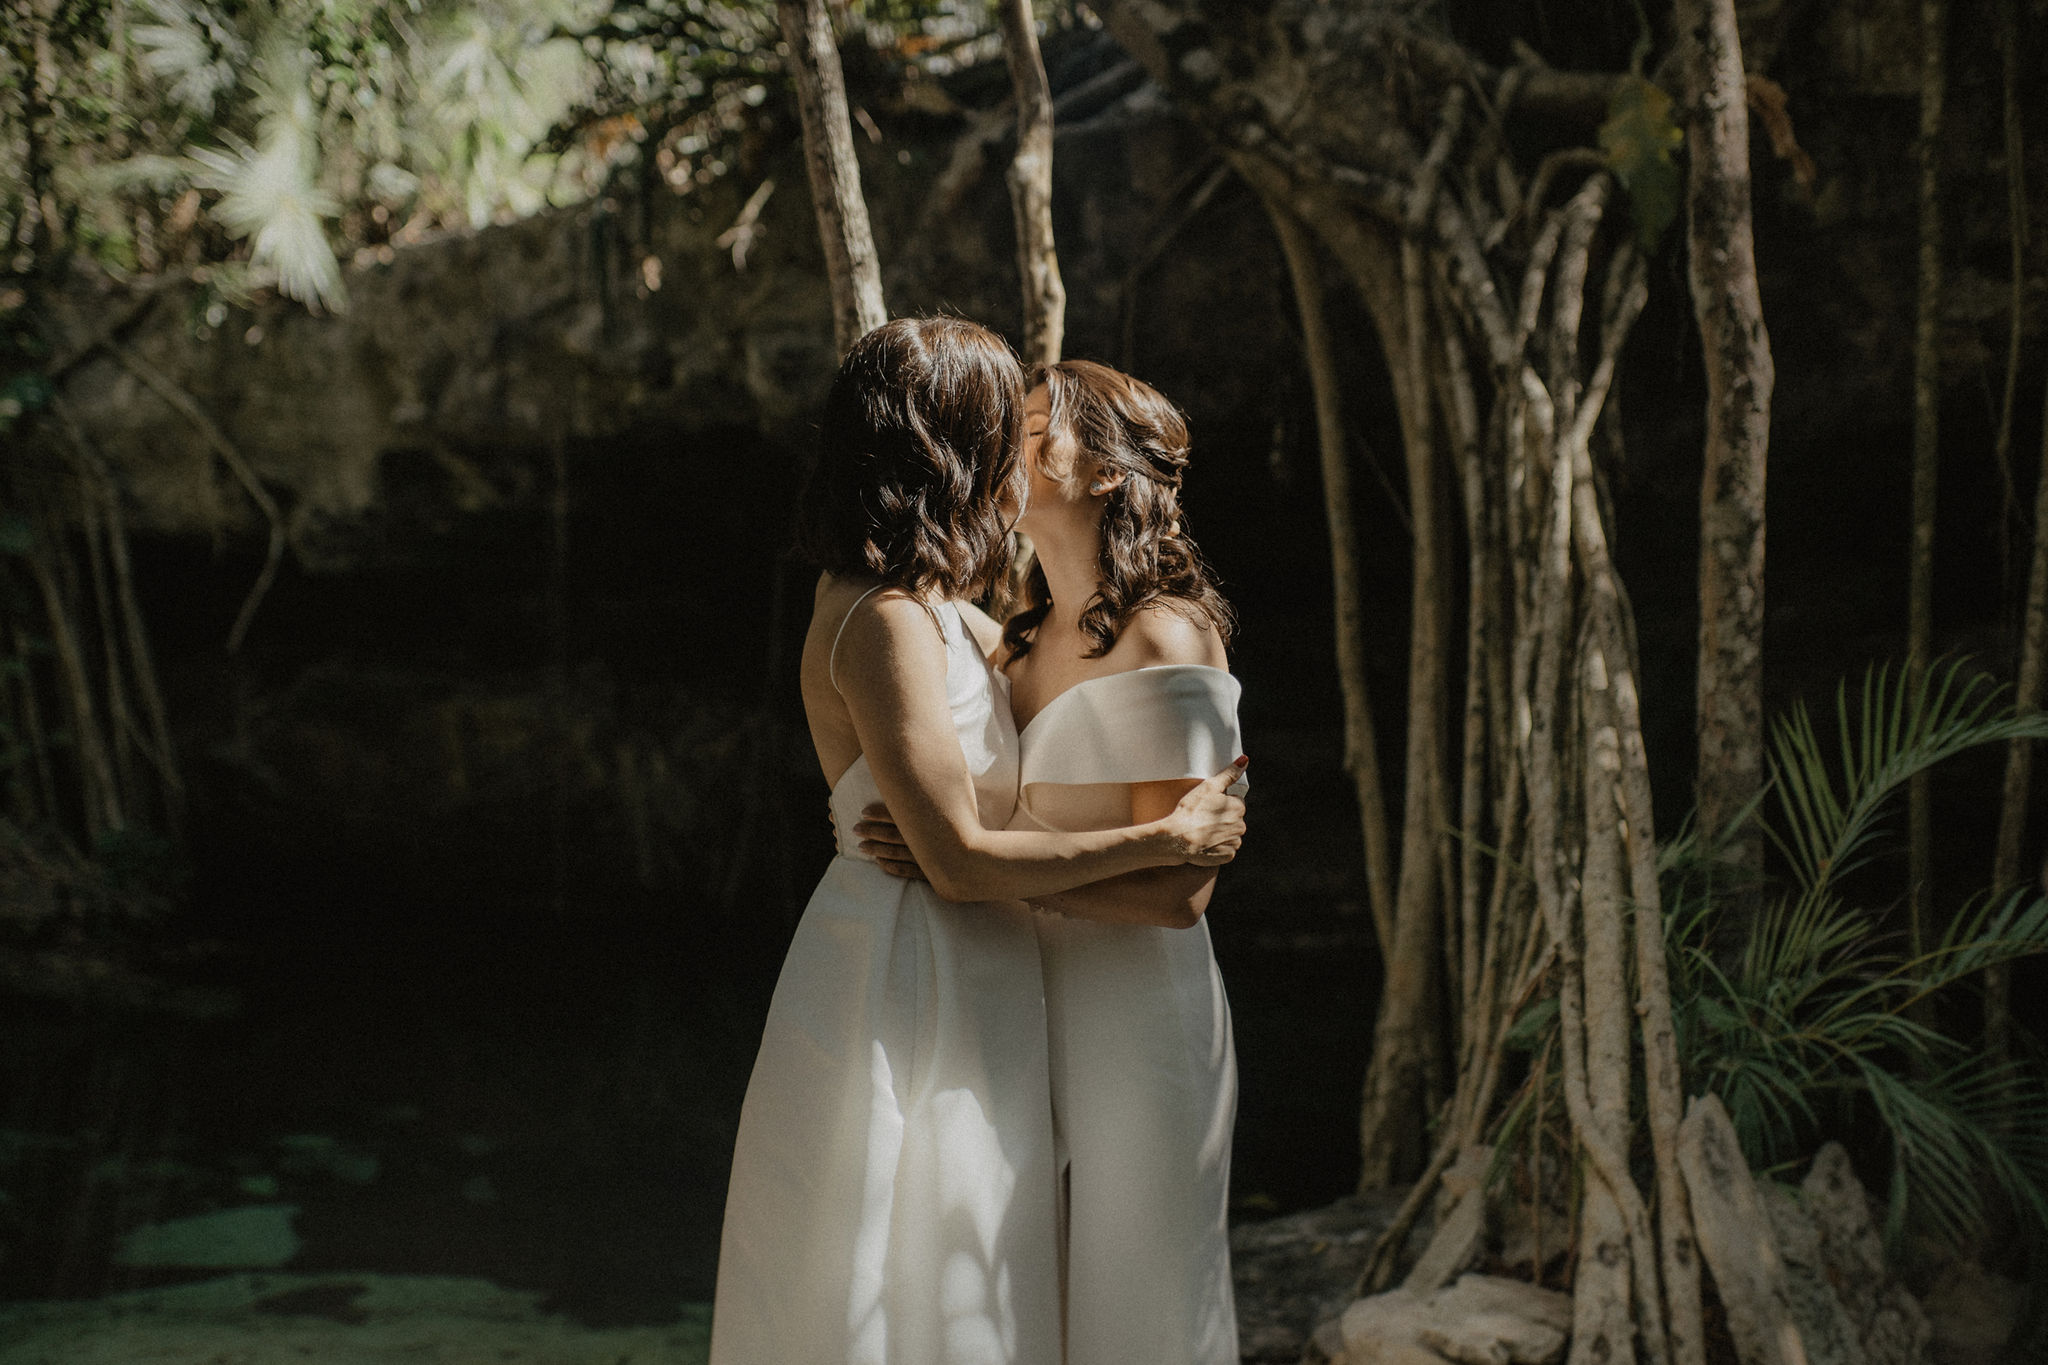 Conie Suarez Bravo photography lesbian gay LGBTQIA+ couples Mexico Elopement Cultural wedding Dancing With Her (1)